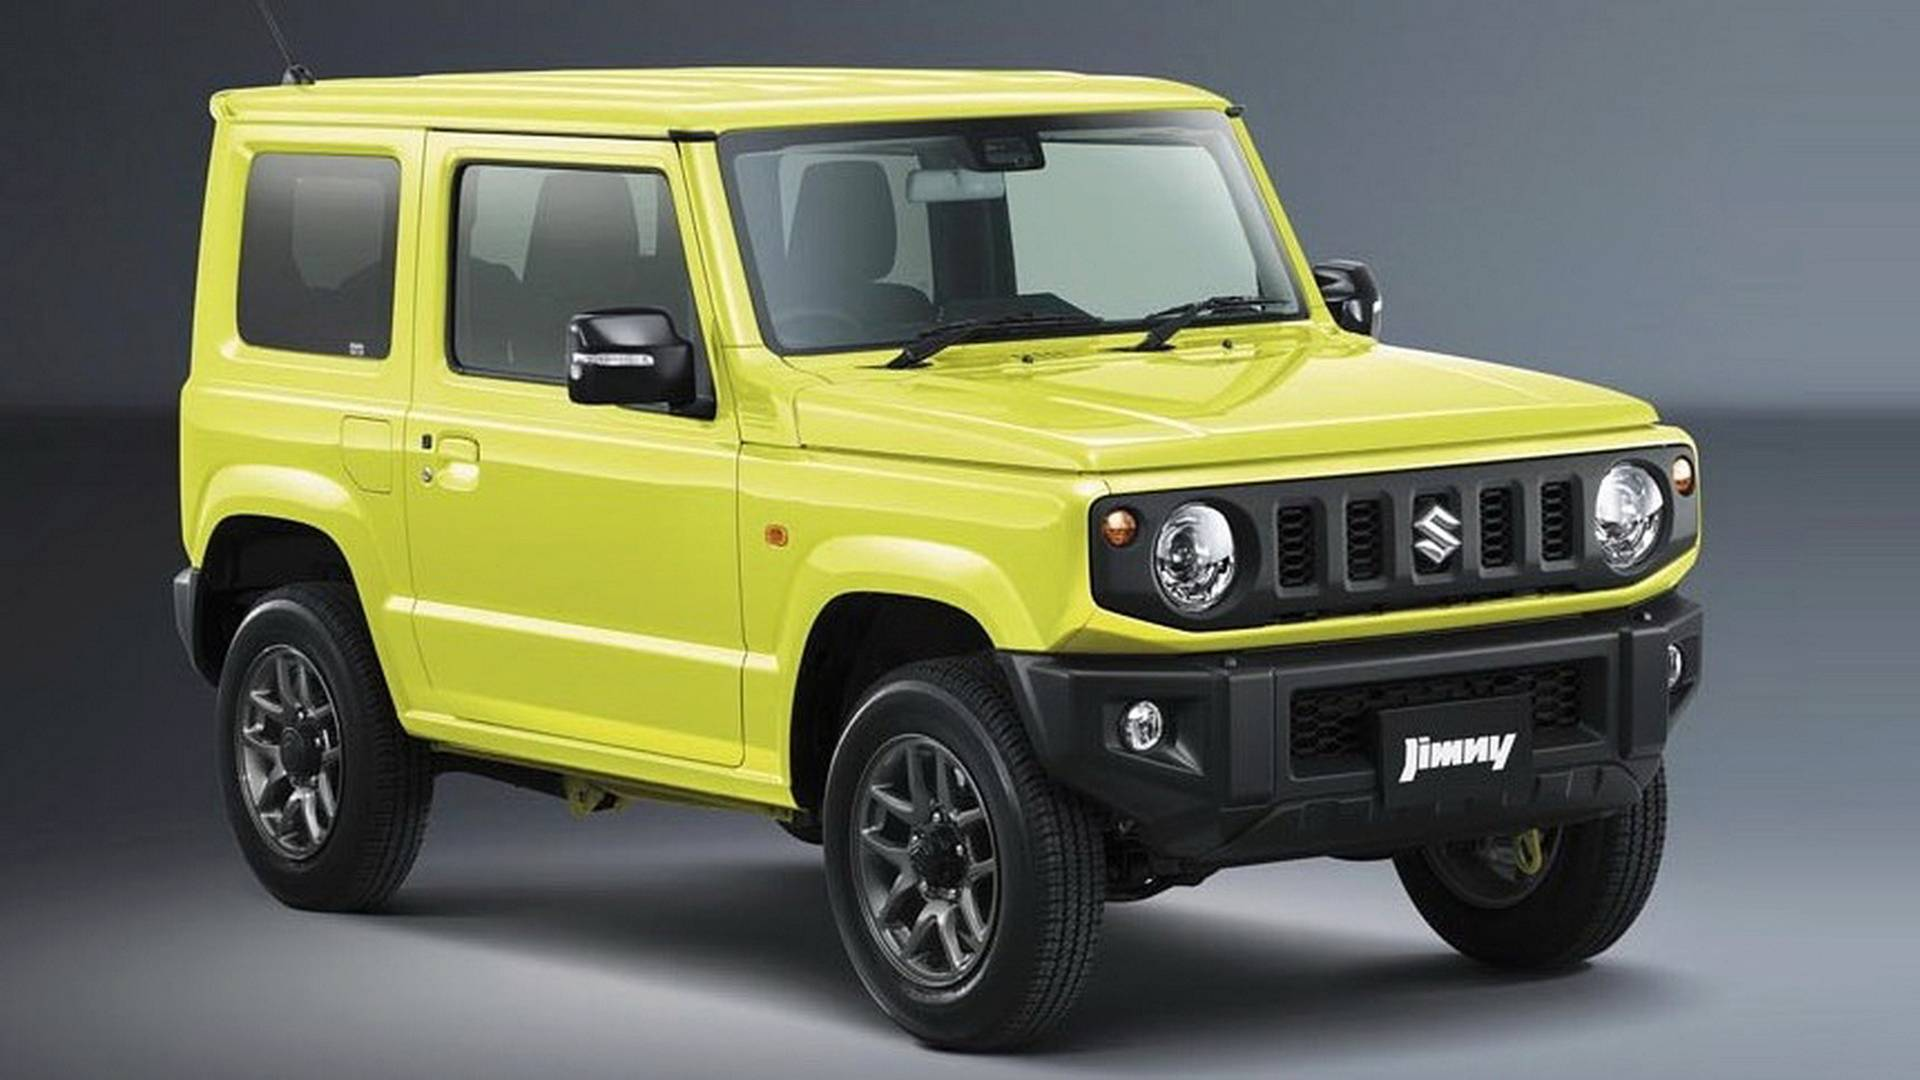 2019 Suzuki Jimny: News, Design, Release >> Suzuki Jimny See The Changes Side By Side